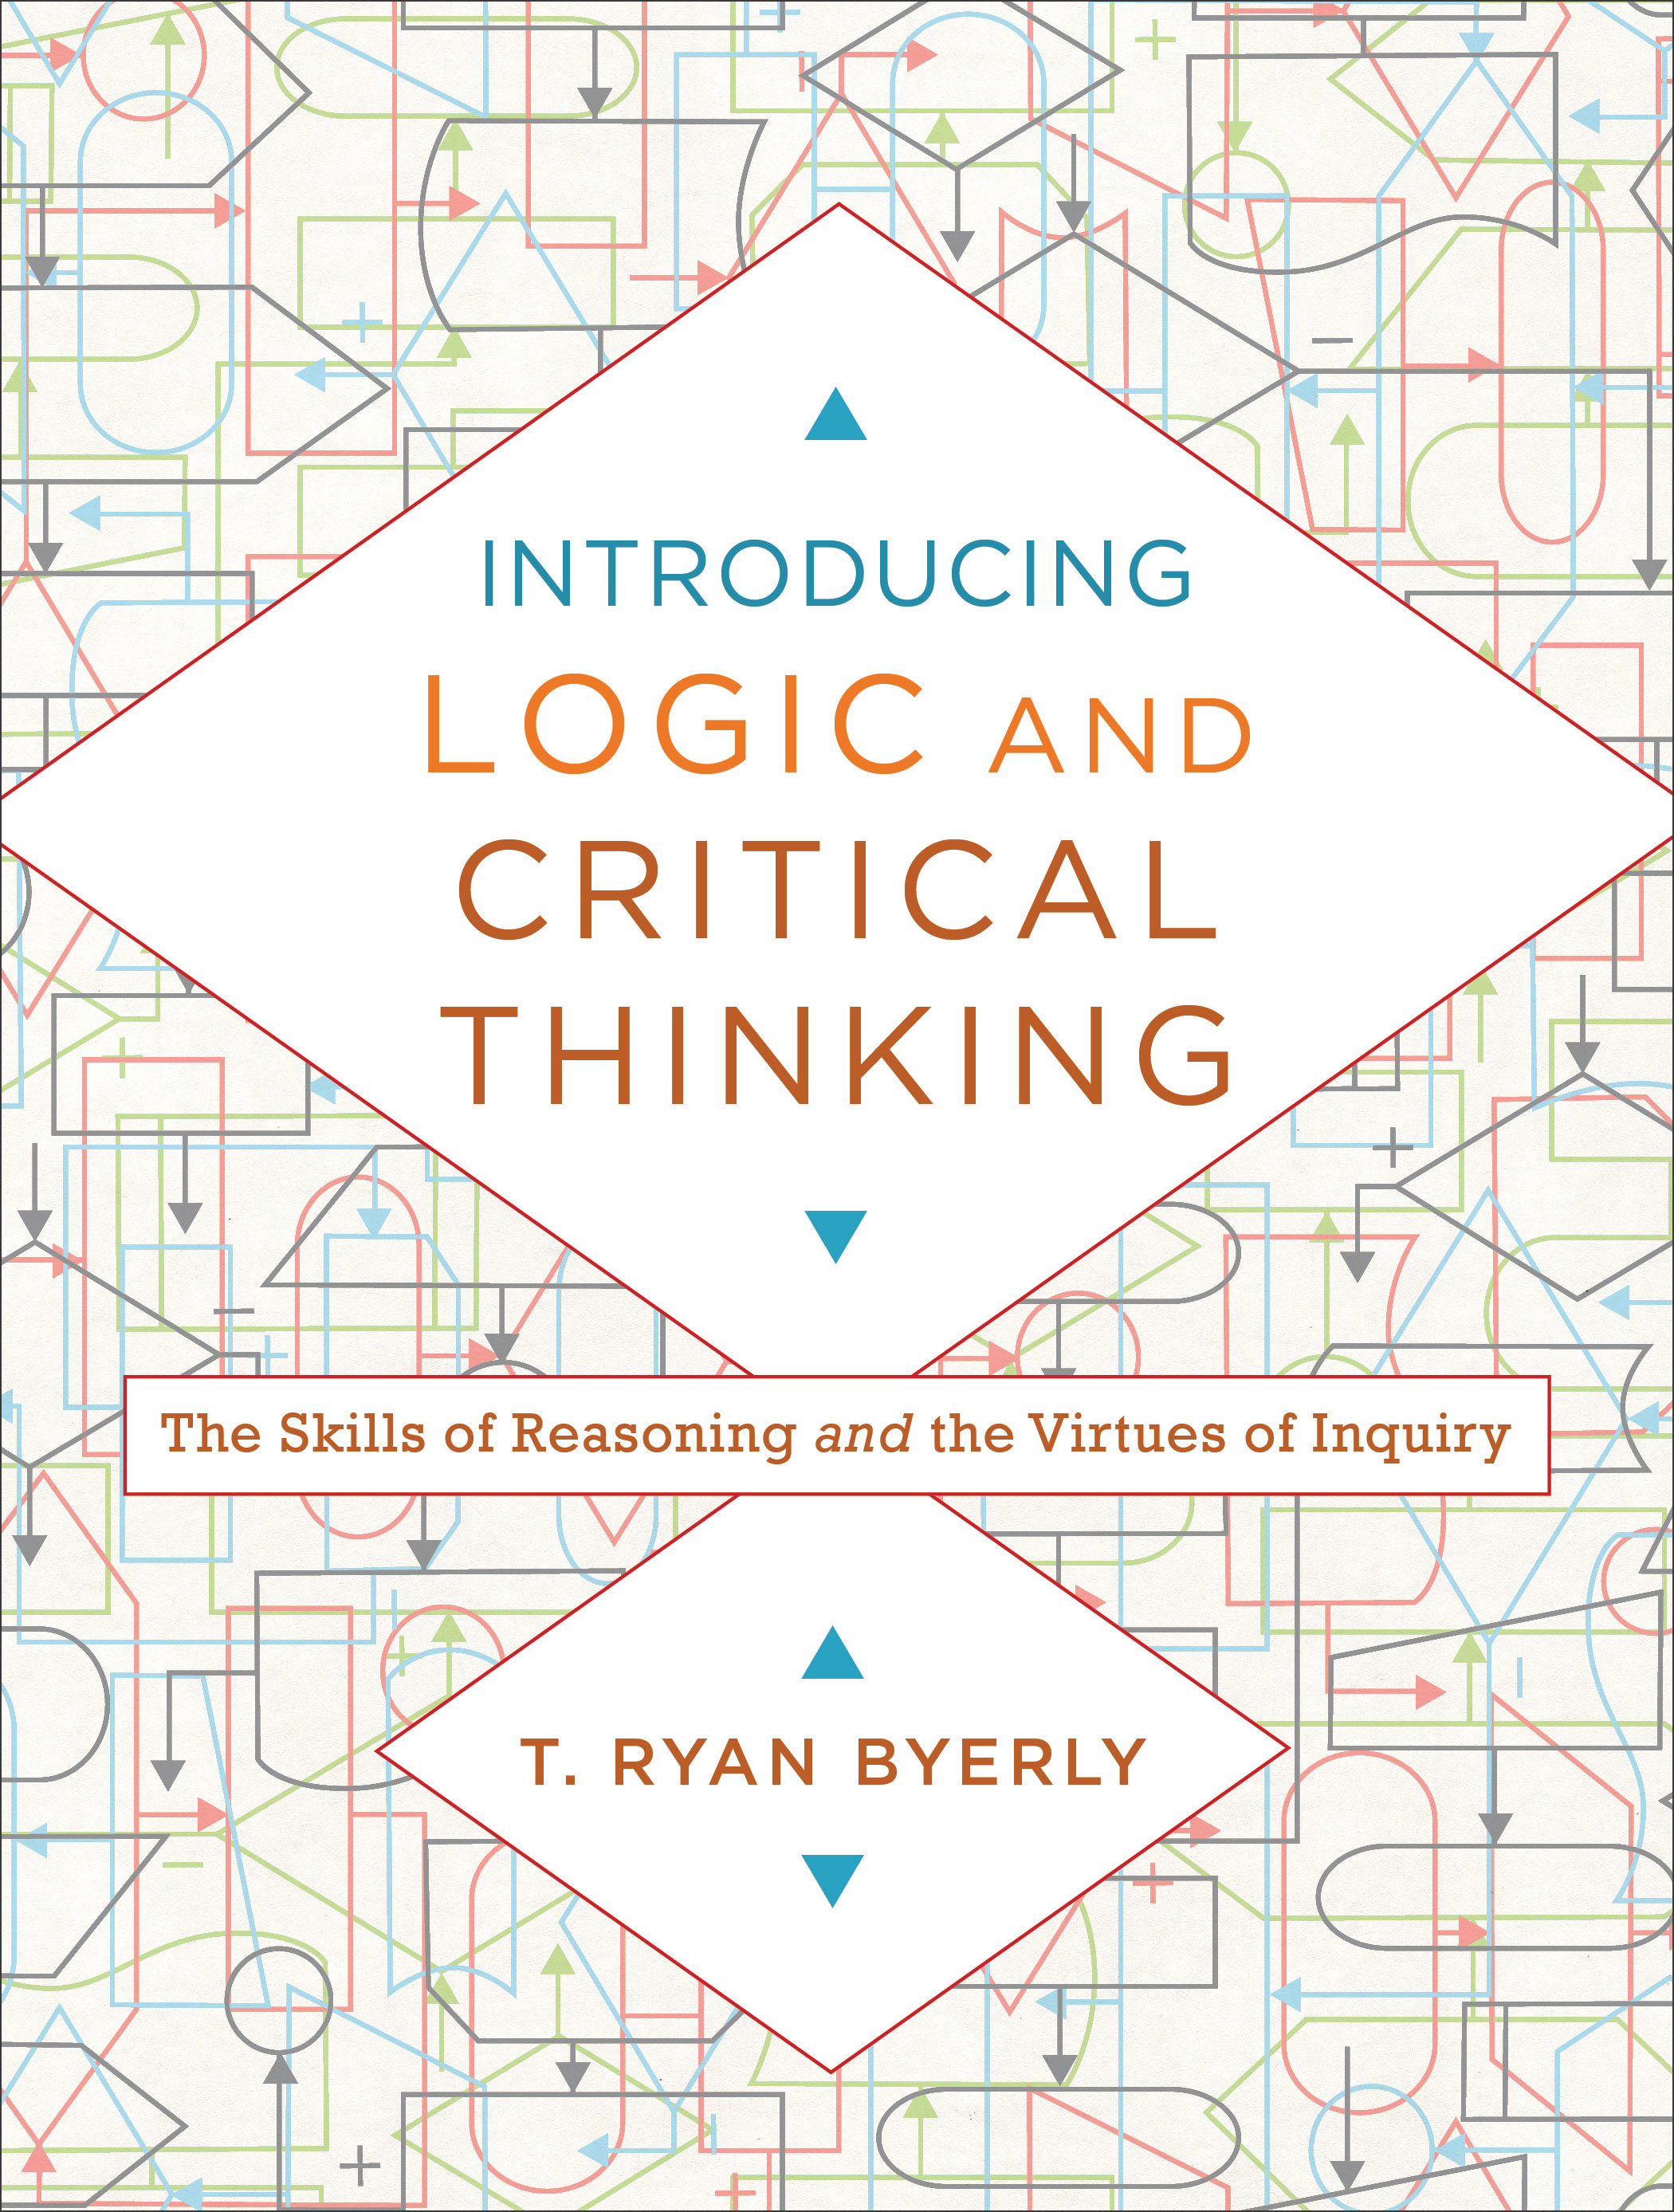 Critical Thinking  An Introduction to Reasoning Well  Robert Arp     SlideShare Succeed in college and beyond by learning critical thinking  Critical  thinking will enable you to better understand  evaluate  and defend the